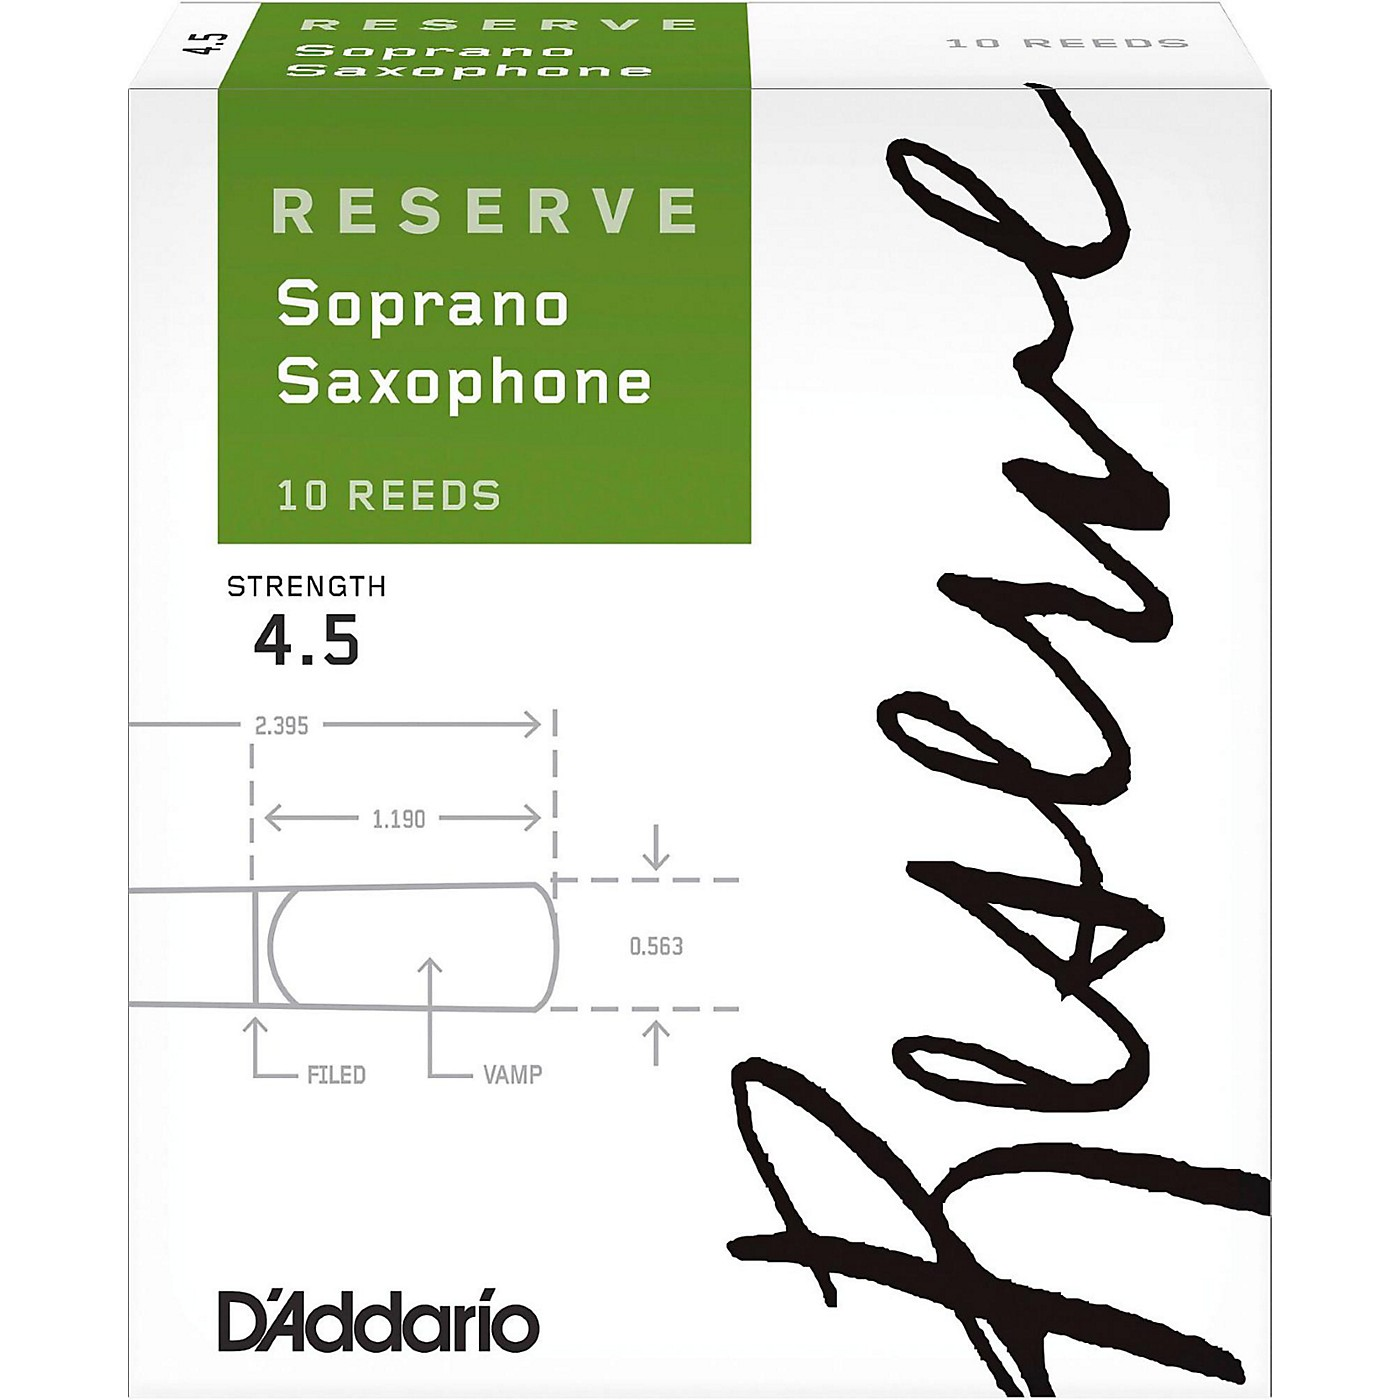 D'Addario Woodwinds Reserve Soprano Saxophone Reeds 10-Pack thumbnail